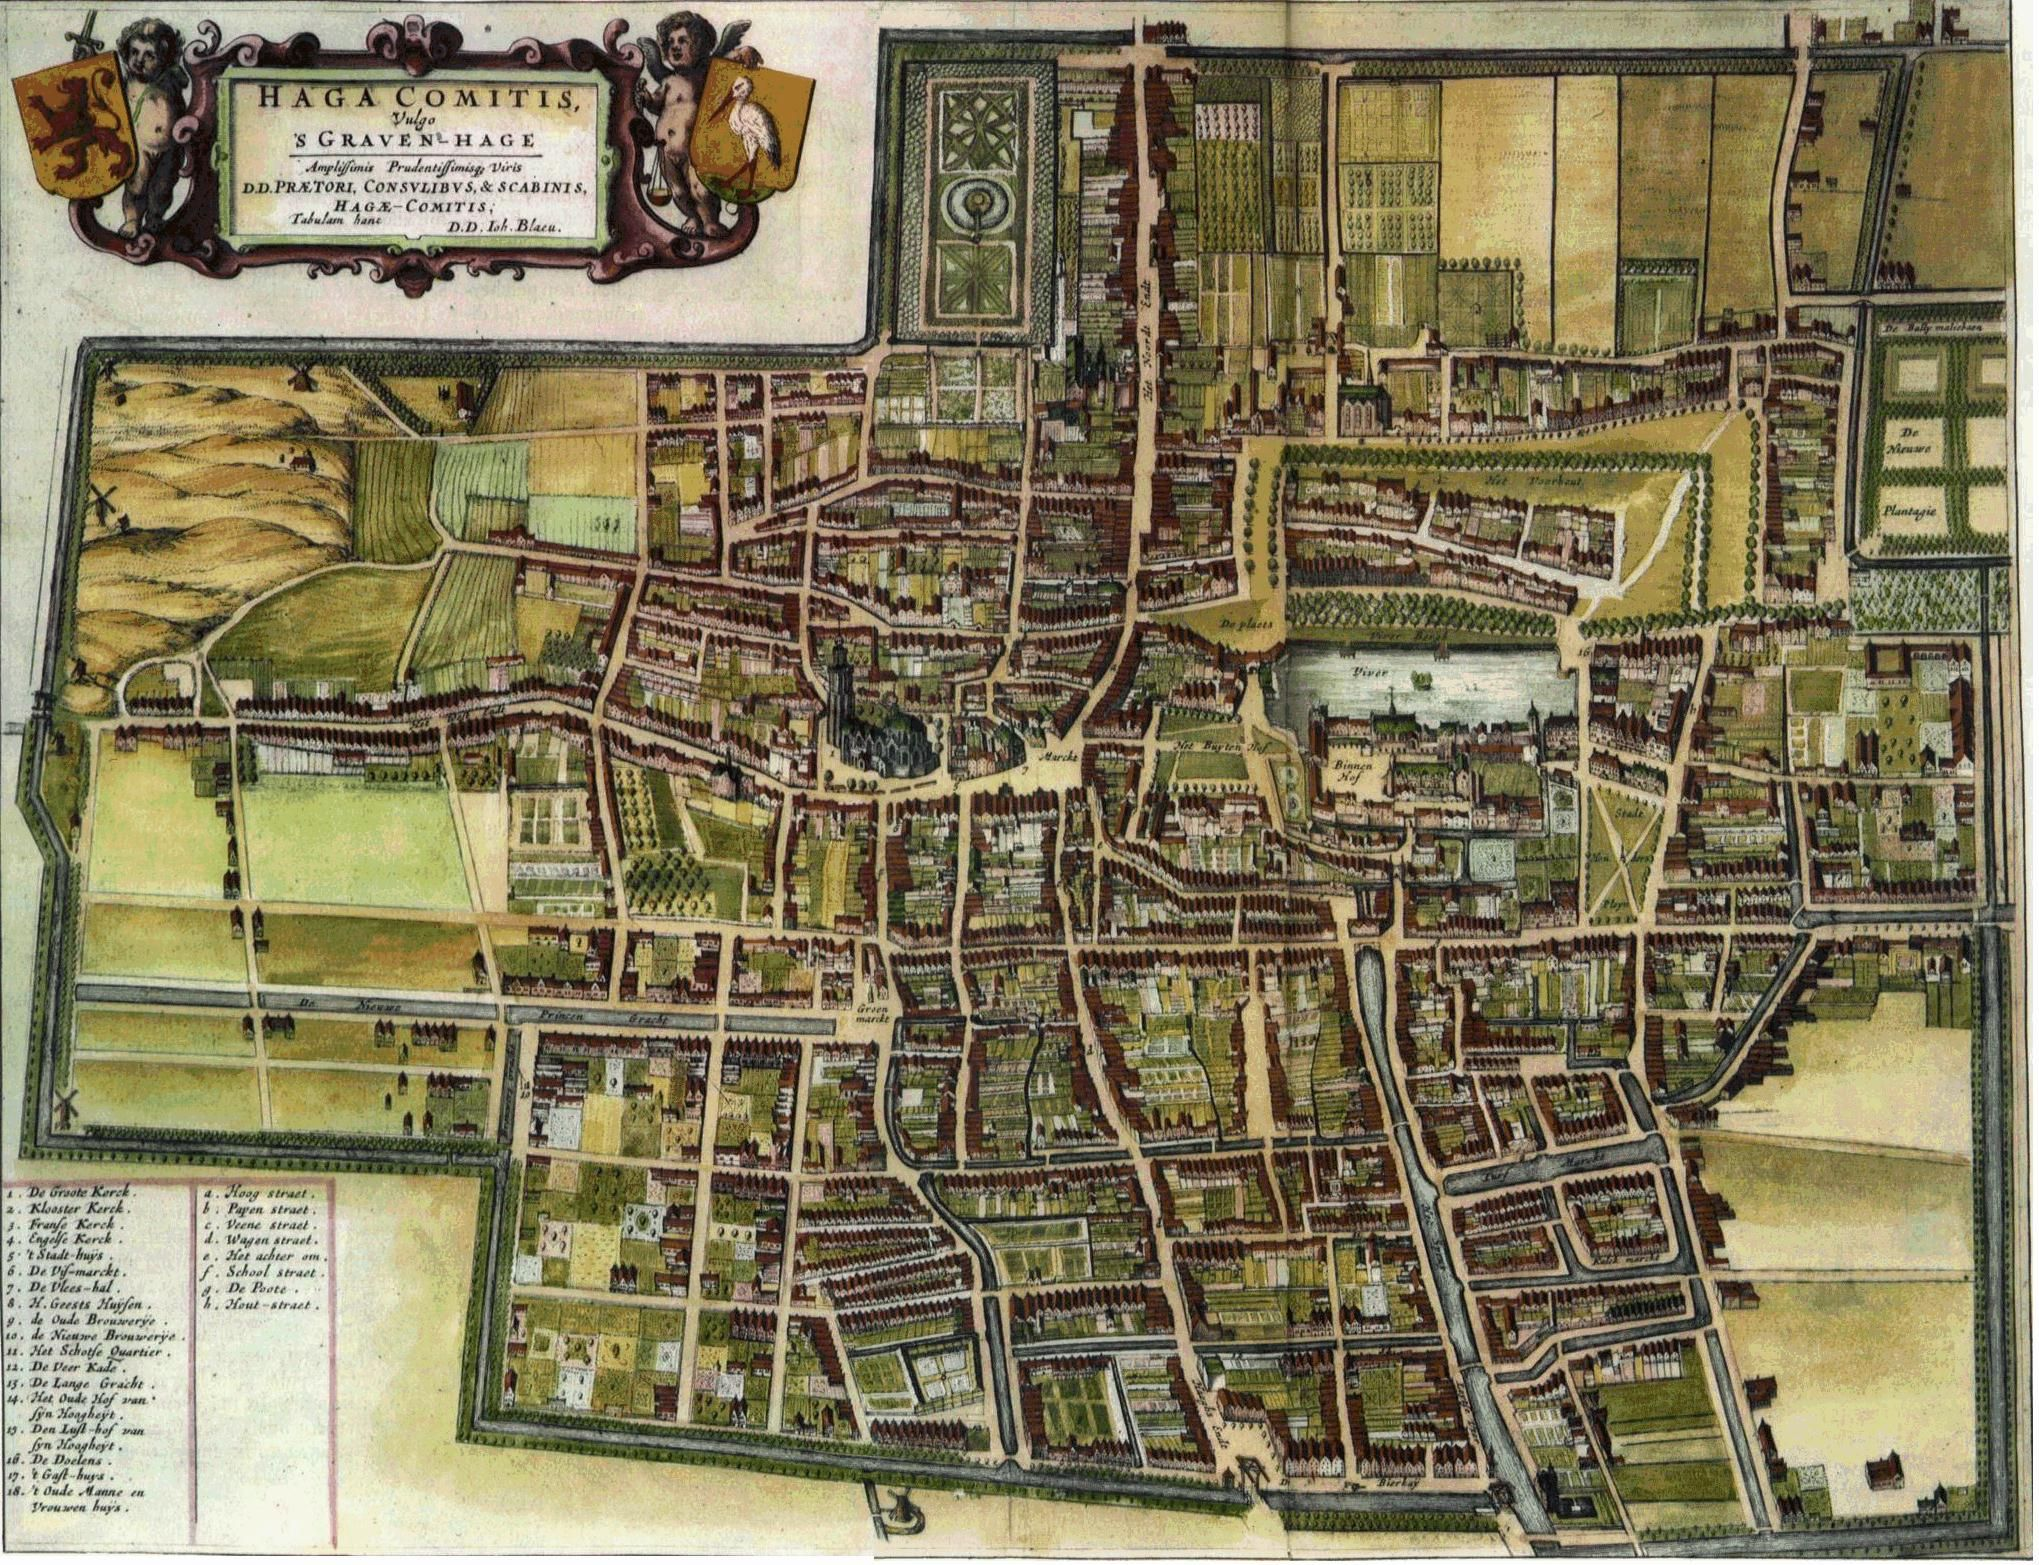 Map of The Hague Netherlands by J Blaeu 1650 used for The